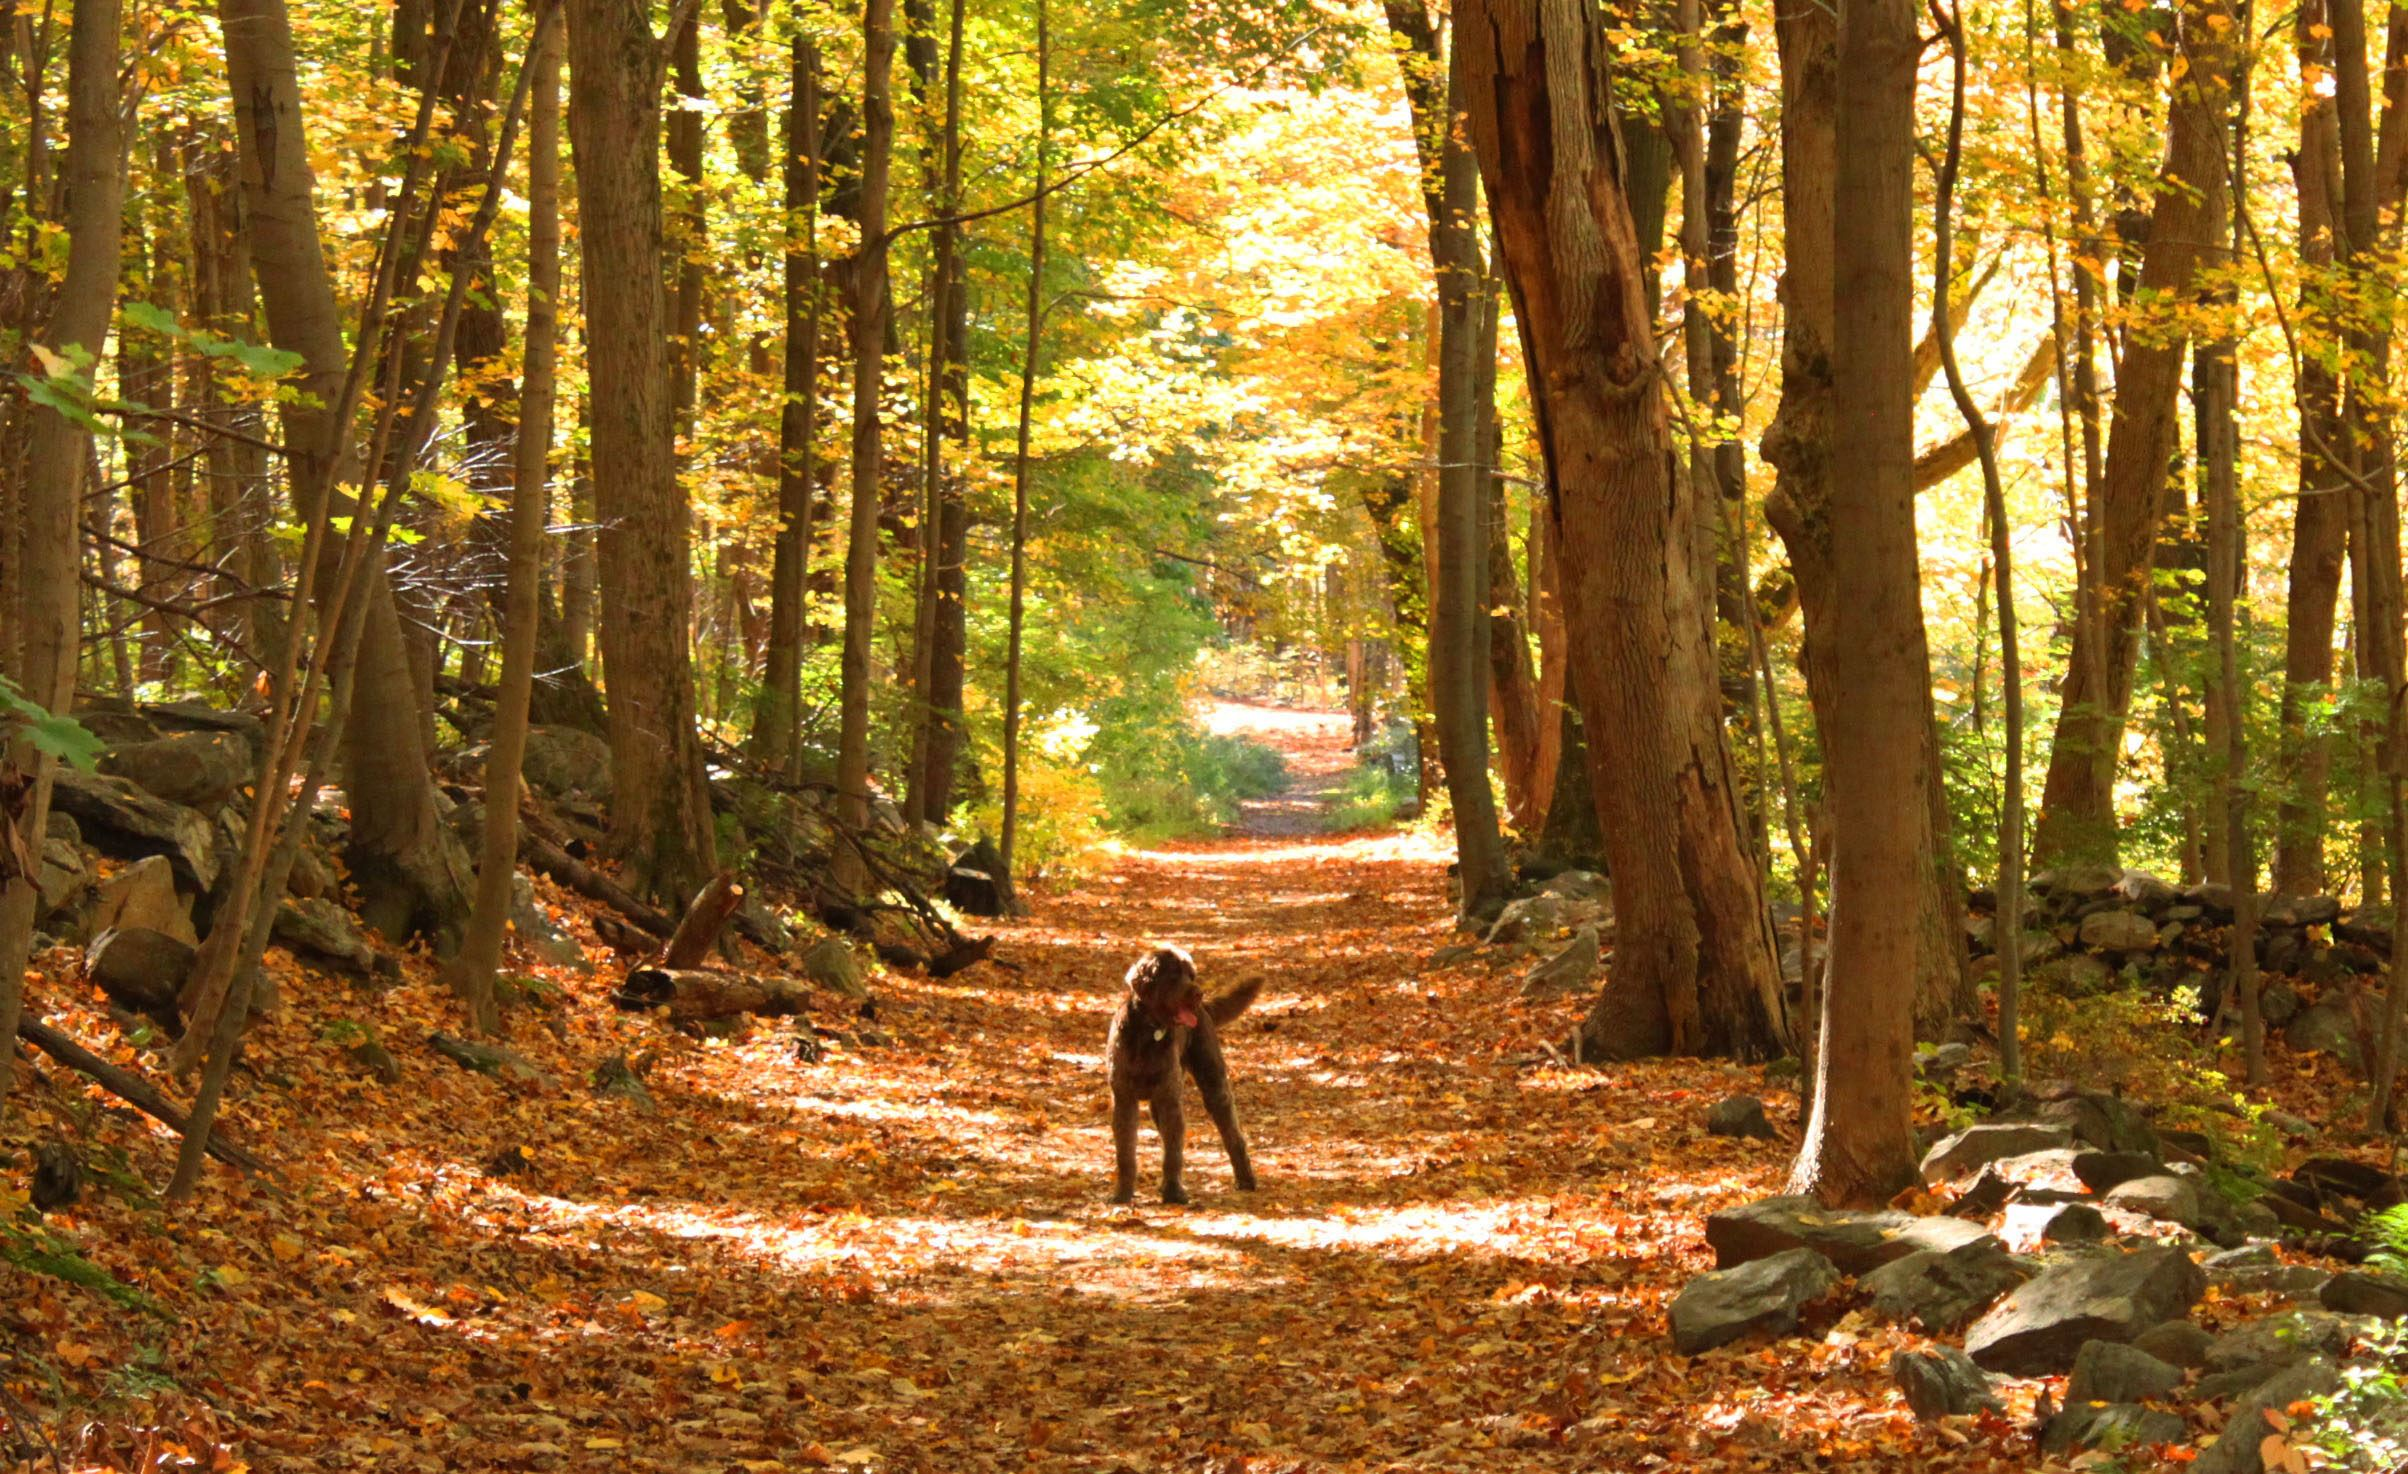 Dog on tree lined path with fallen leaves